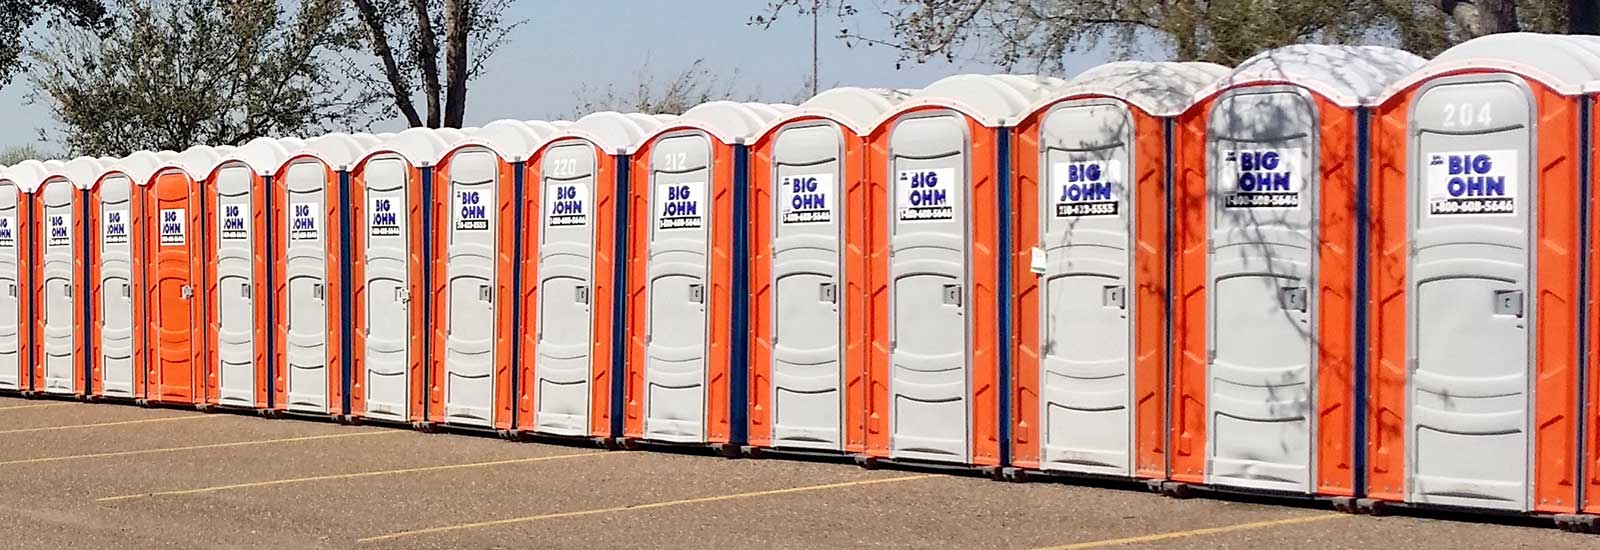 Portable restroom rentals in South Texas and Central Texas